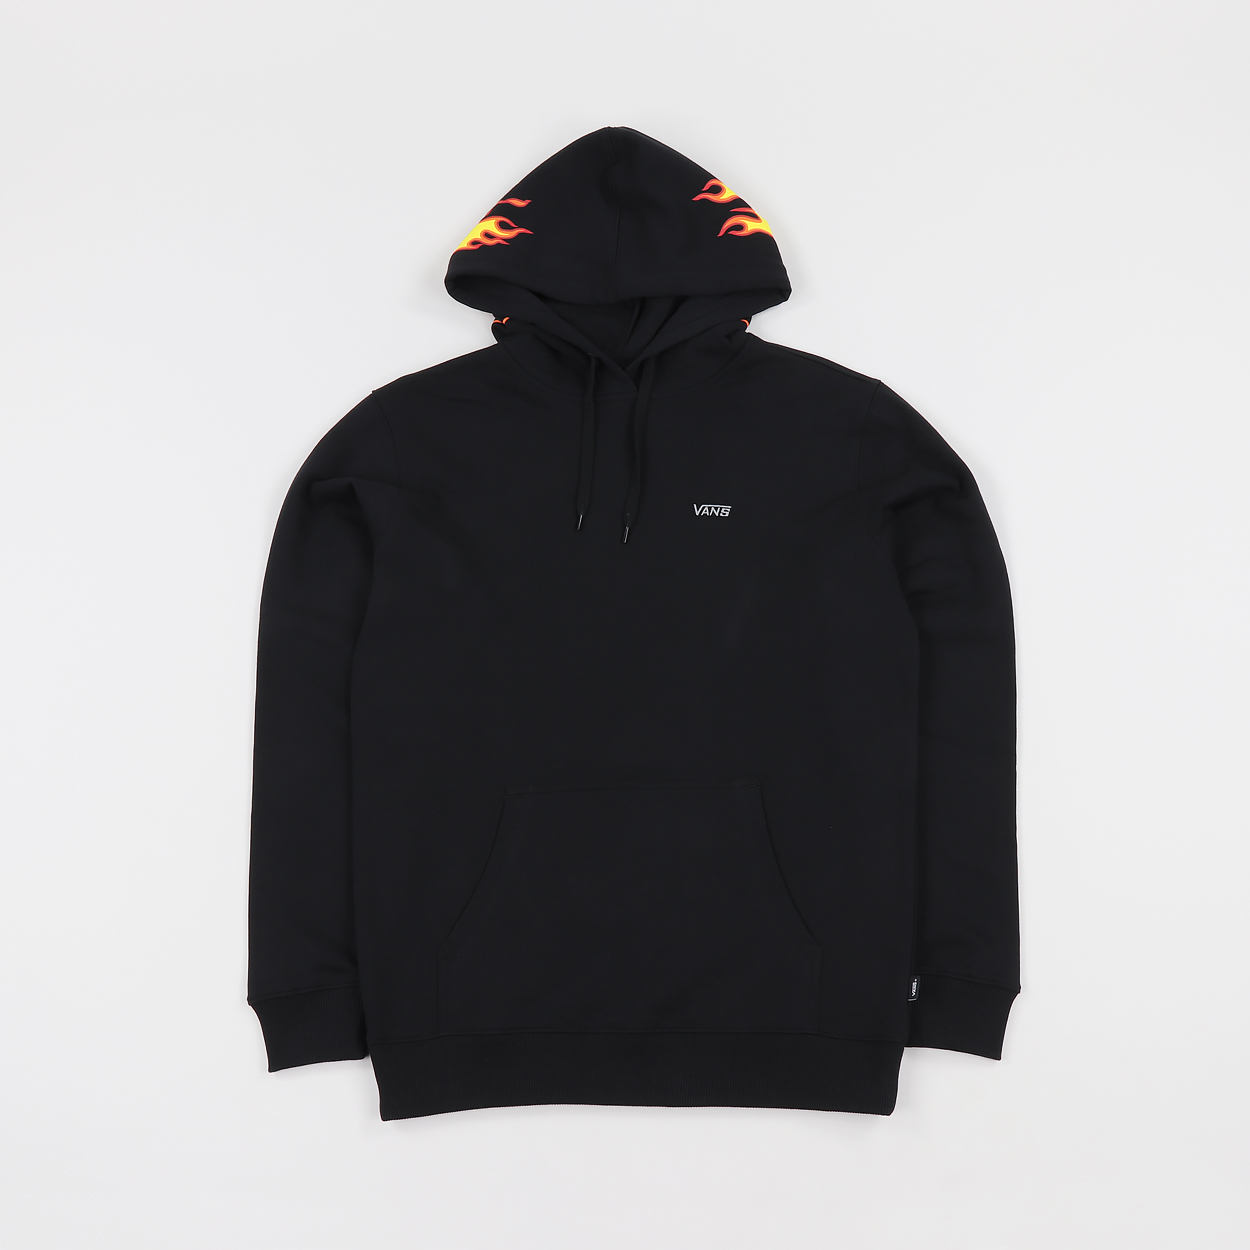 e0ea5b82ecaa Skate champs Vans and Thrasher have colaborated to bring us all a sweet  selection of threads. This pullover hoodie features a Flame logo over the  hood and ...